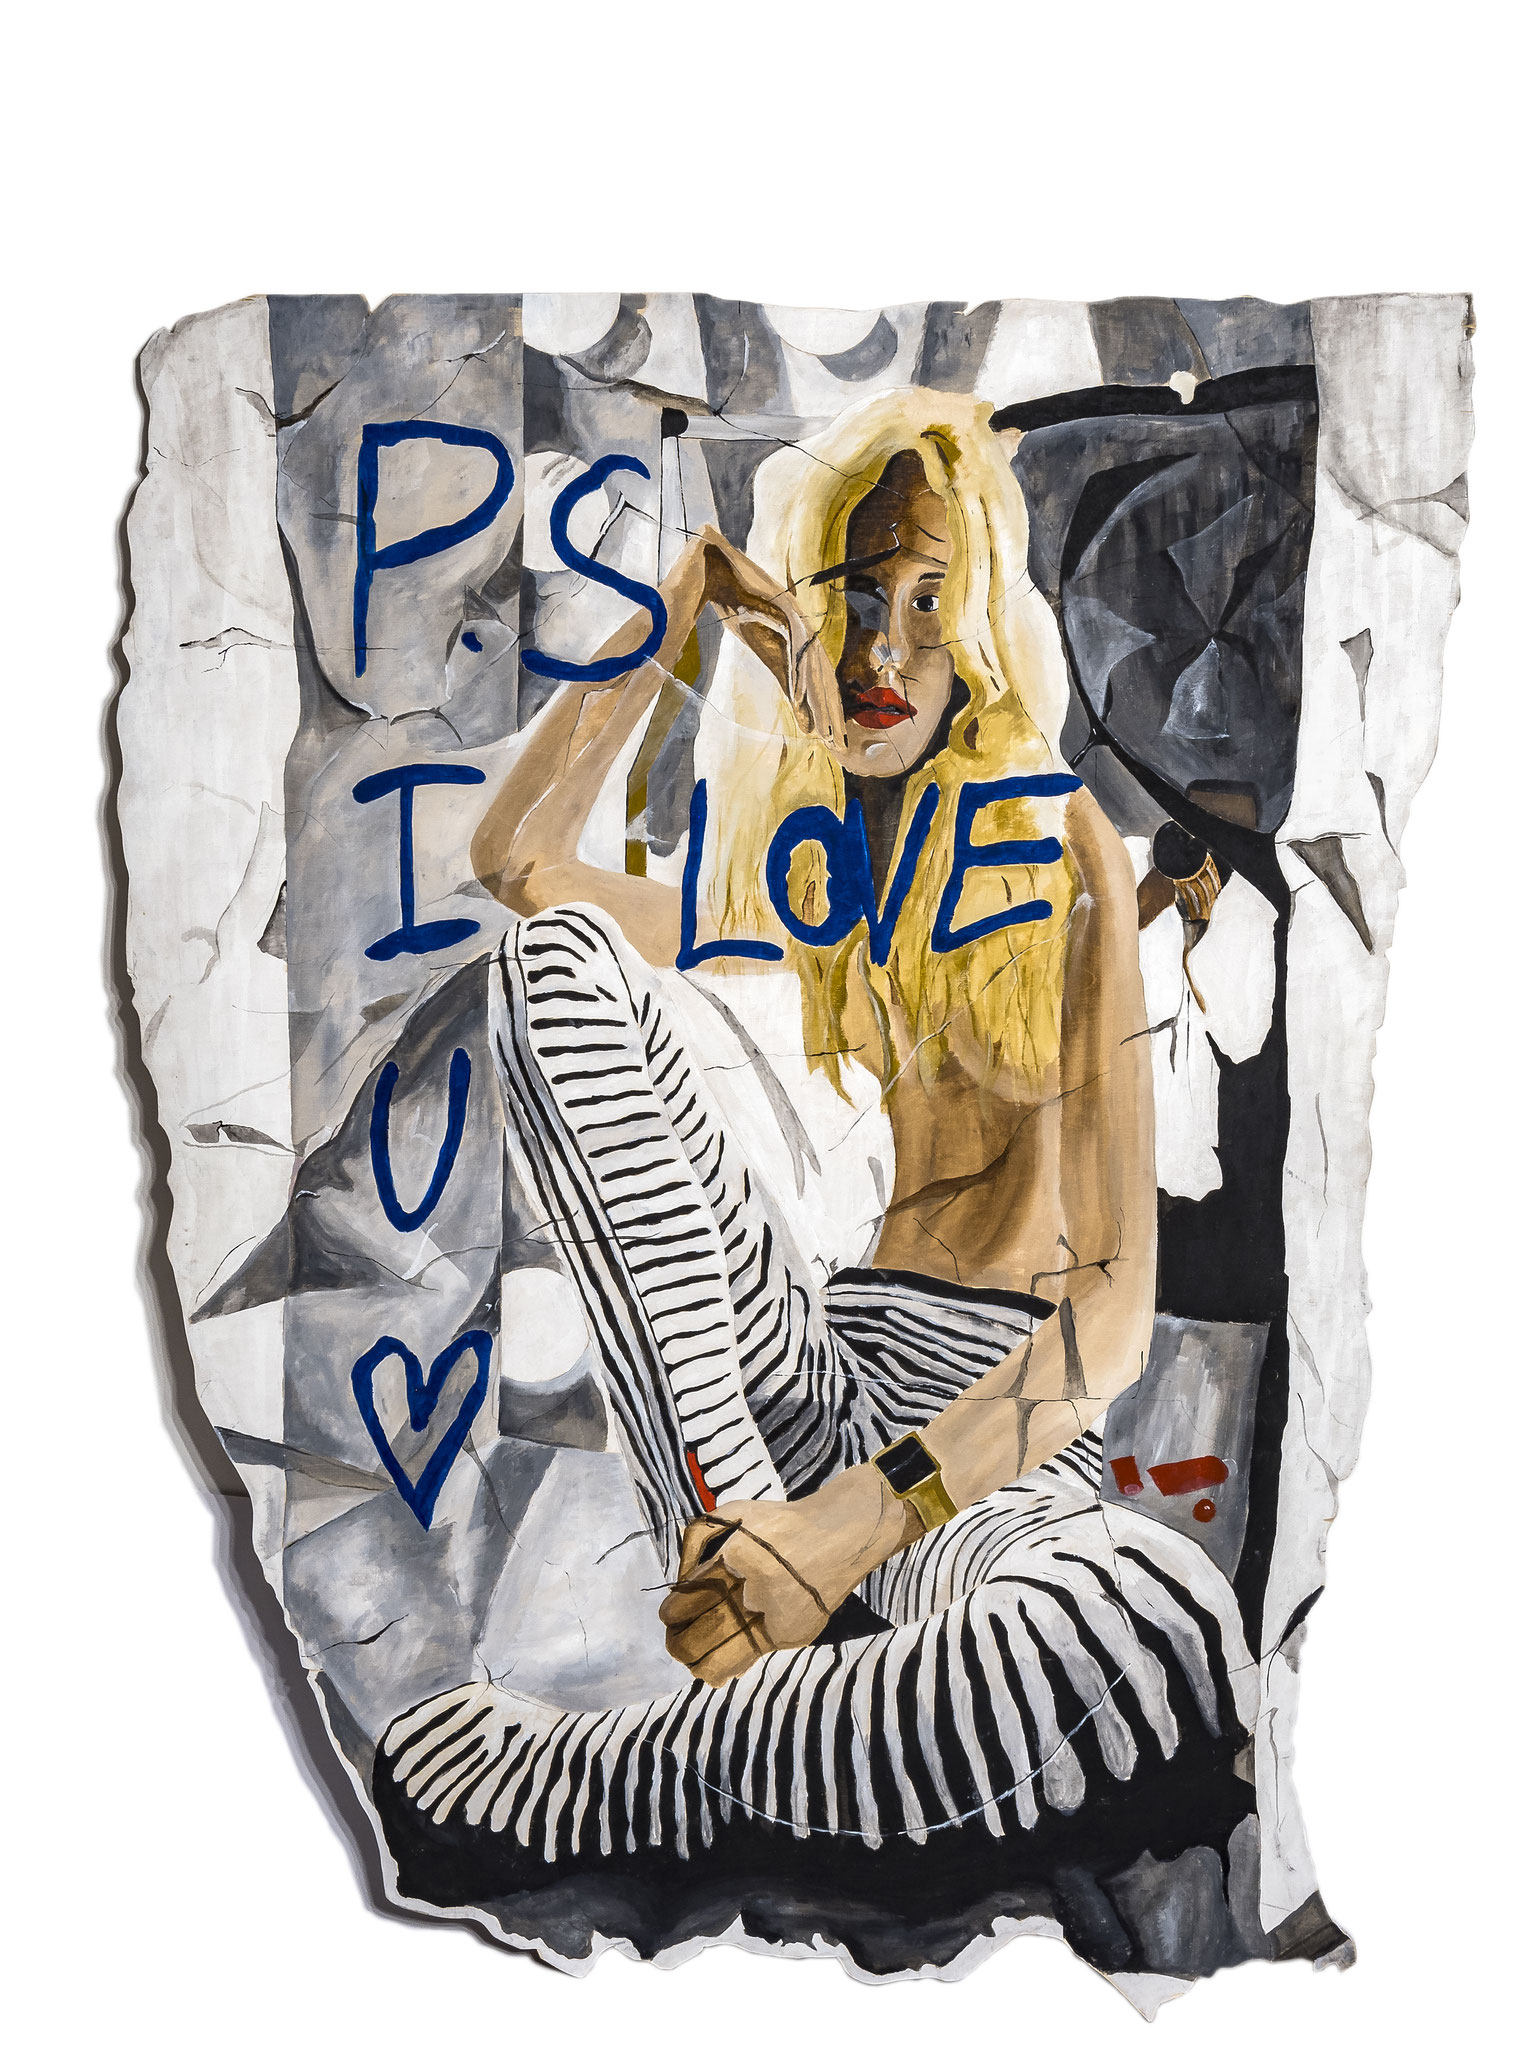 PS I Love You - 2019 - 160cm x 110cm